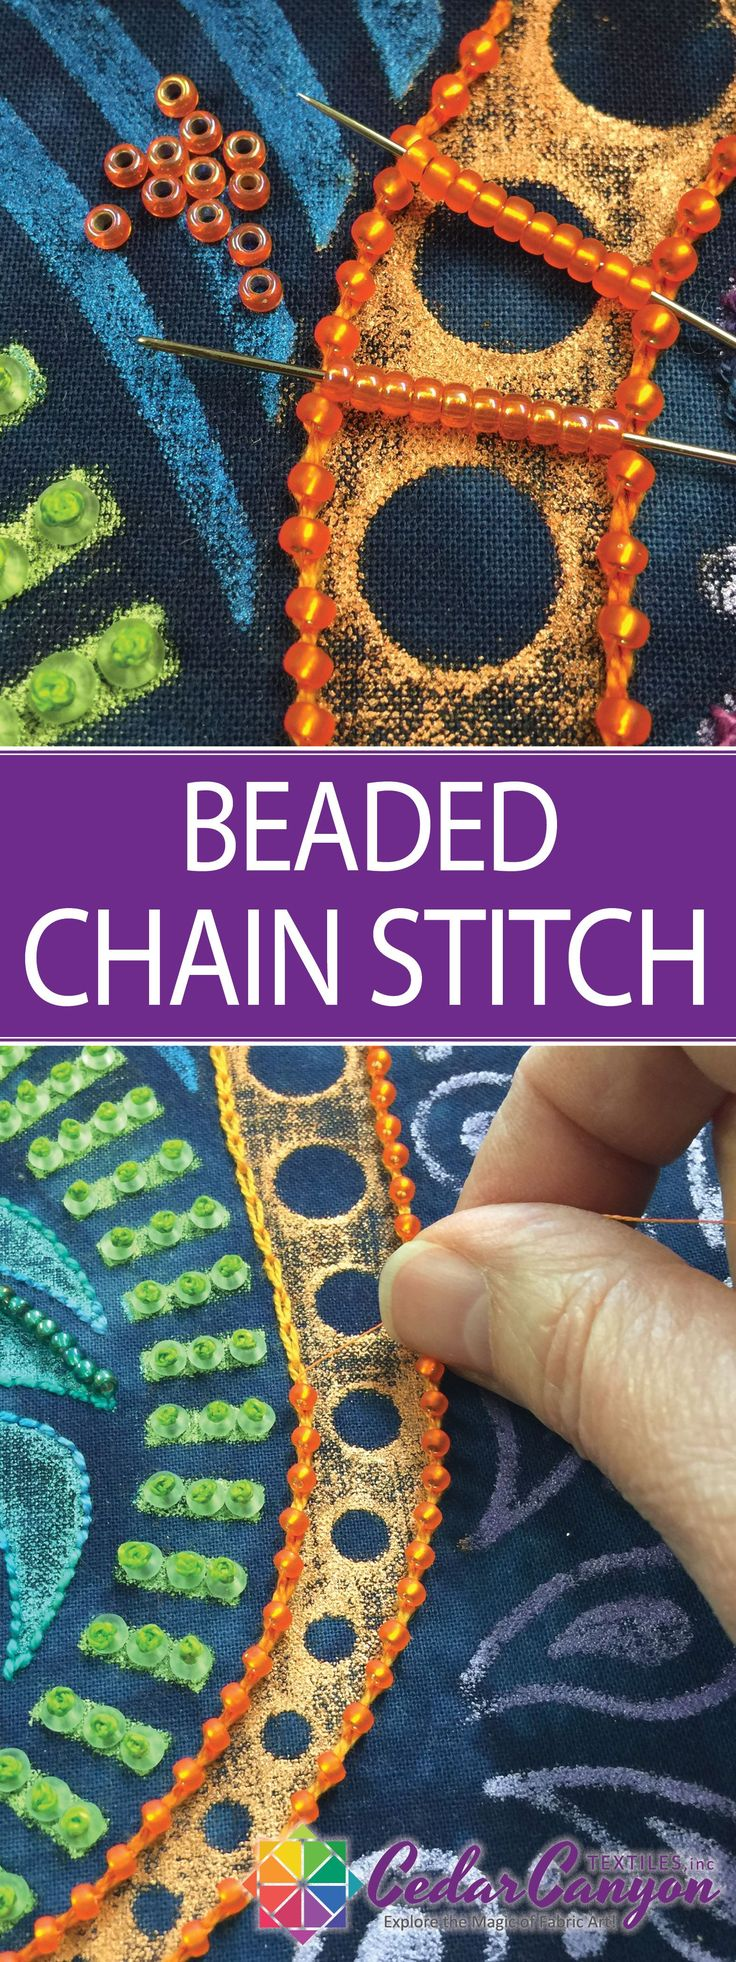 Beaded Chain Stitch is a simple two-step method for adding beads to hand embroidery from Shelly Stokes at CedarCanyonTextiles.com